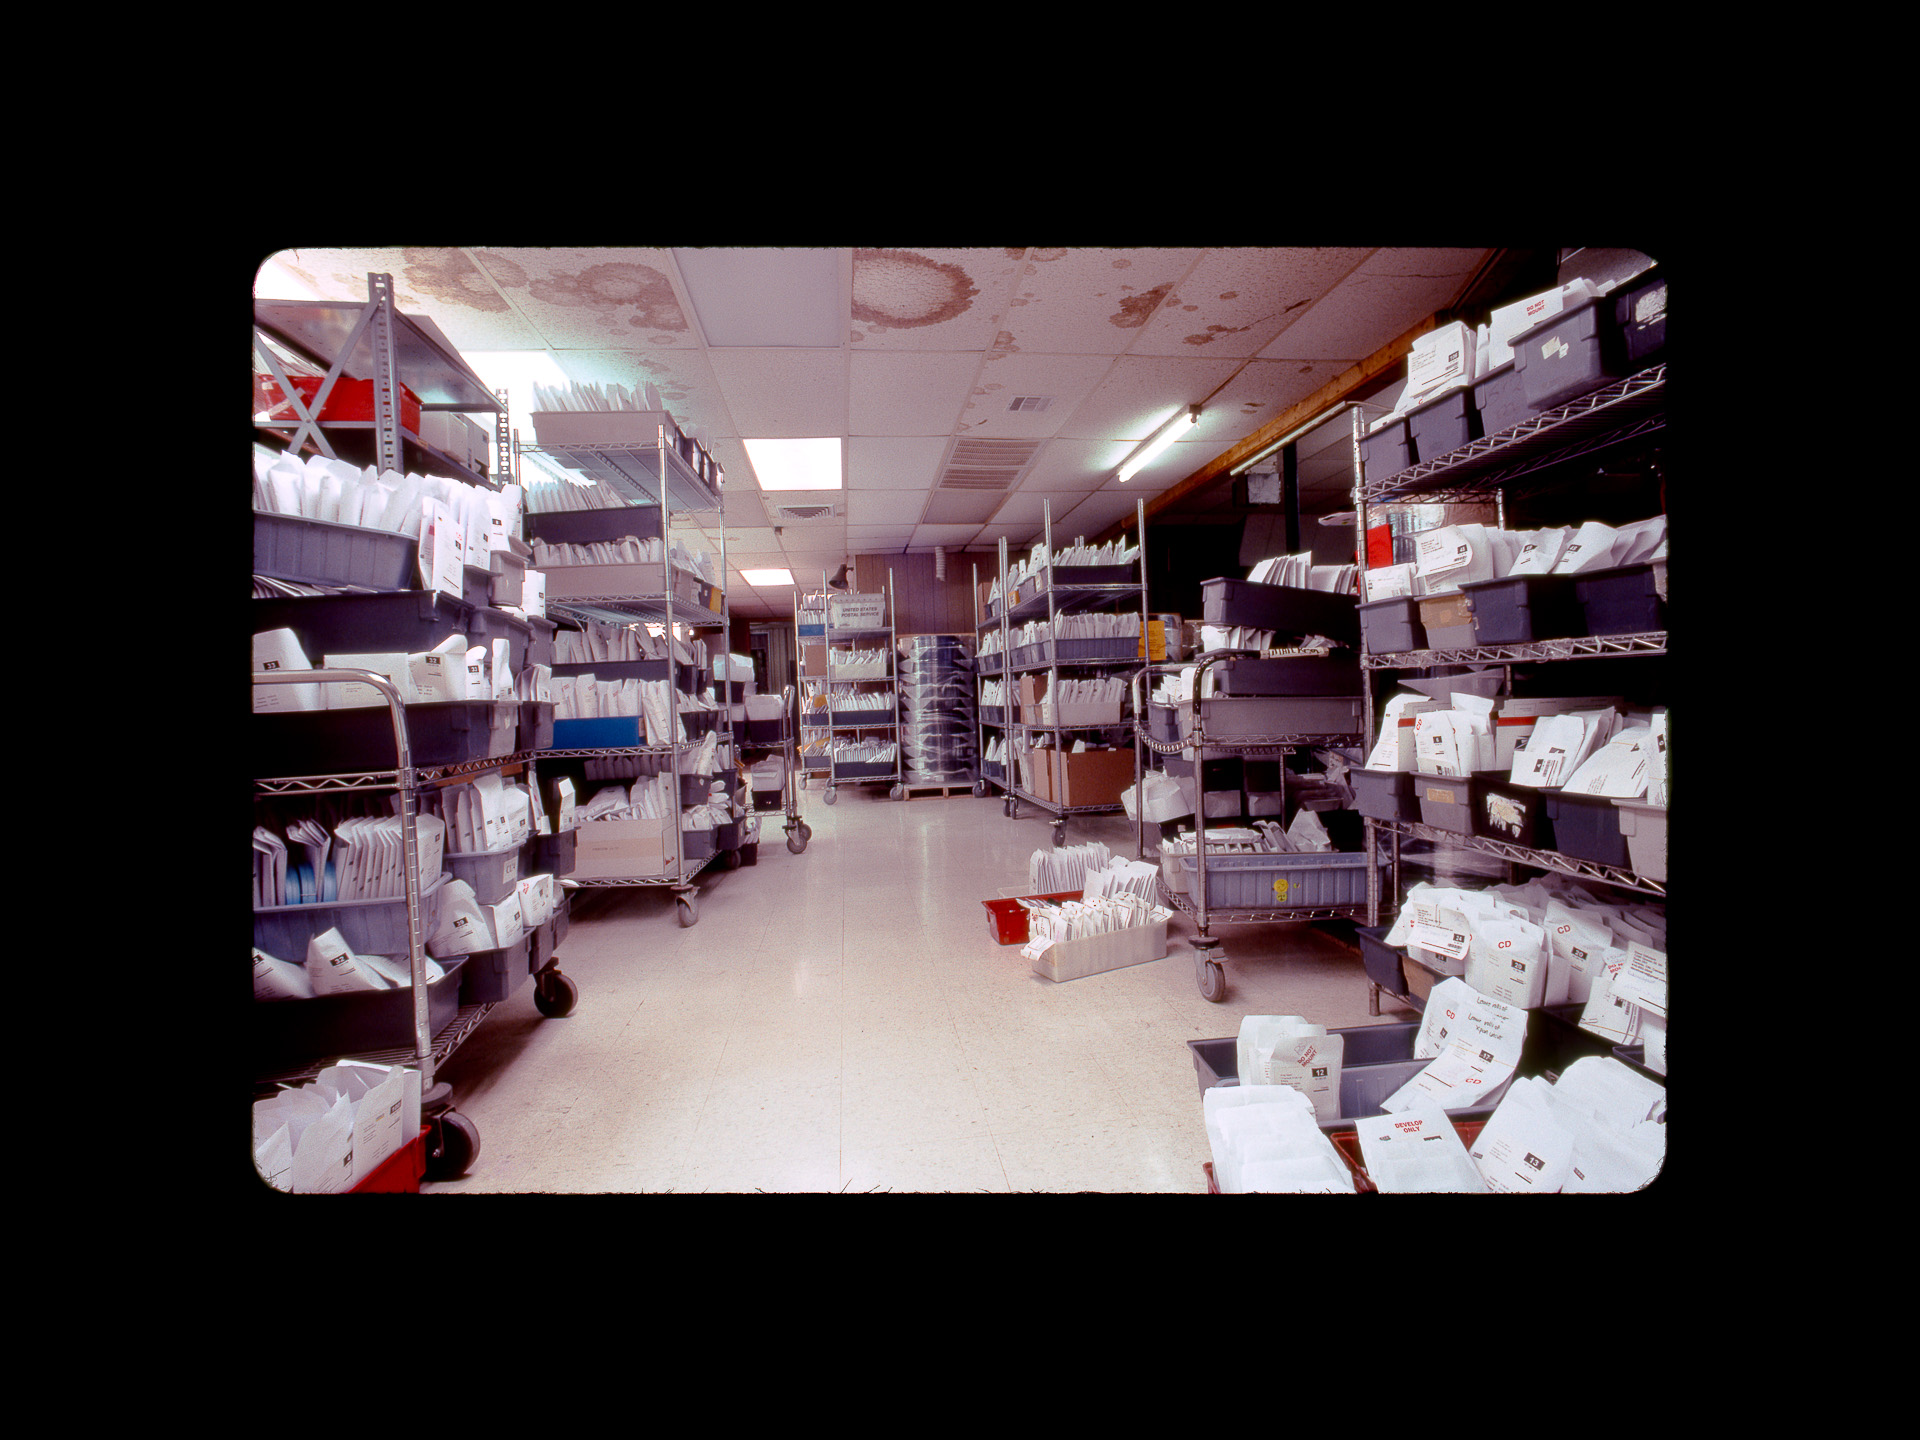 The mailroom overflow at Dwayne's Photo on December 29, 2010. During the final week of Kodachrome processing, Dwayne's received more film in the mail than they would have normally received in an entire month. Photo ©2010 Stephen Takacs